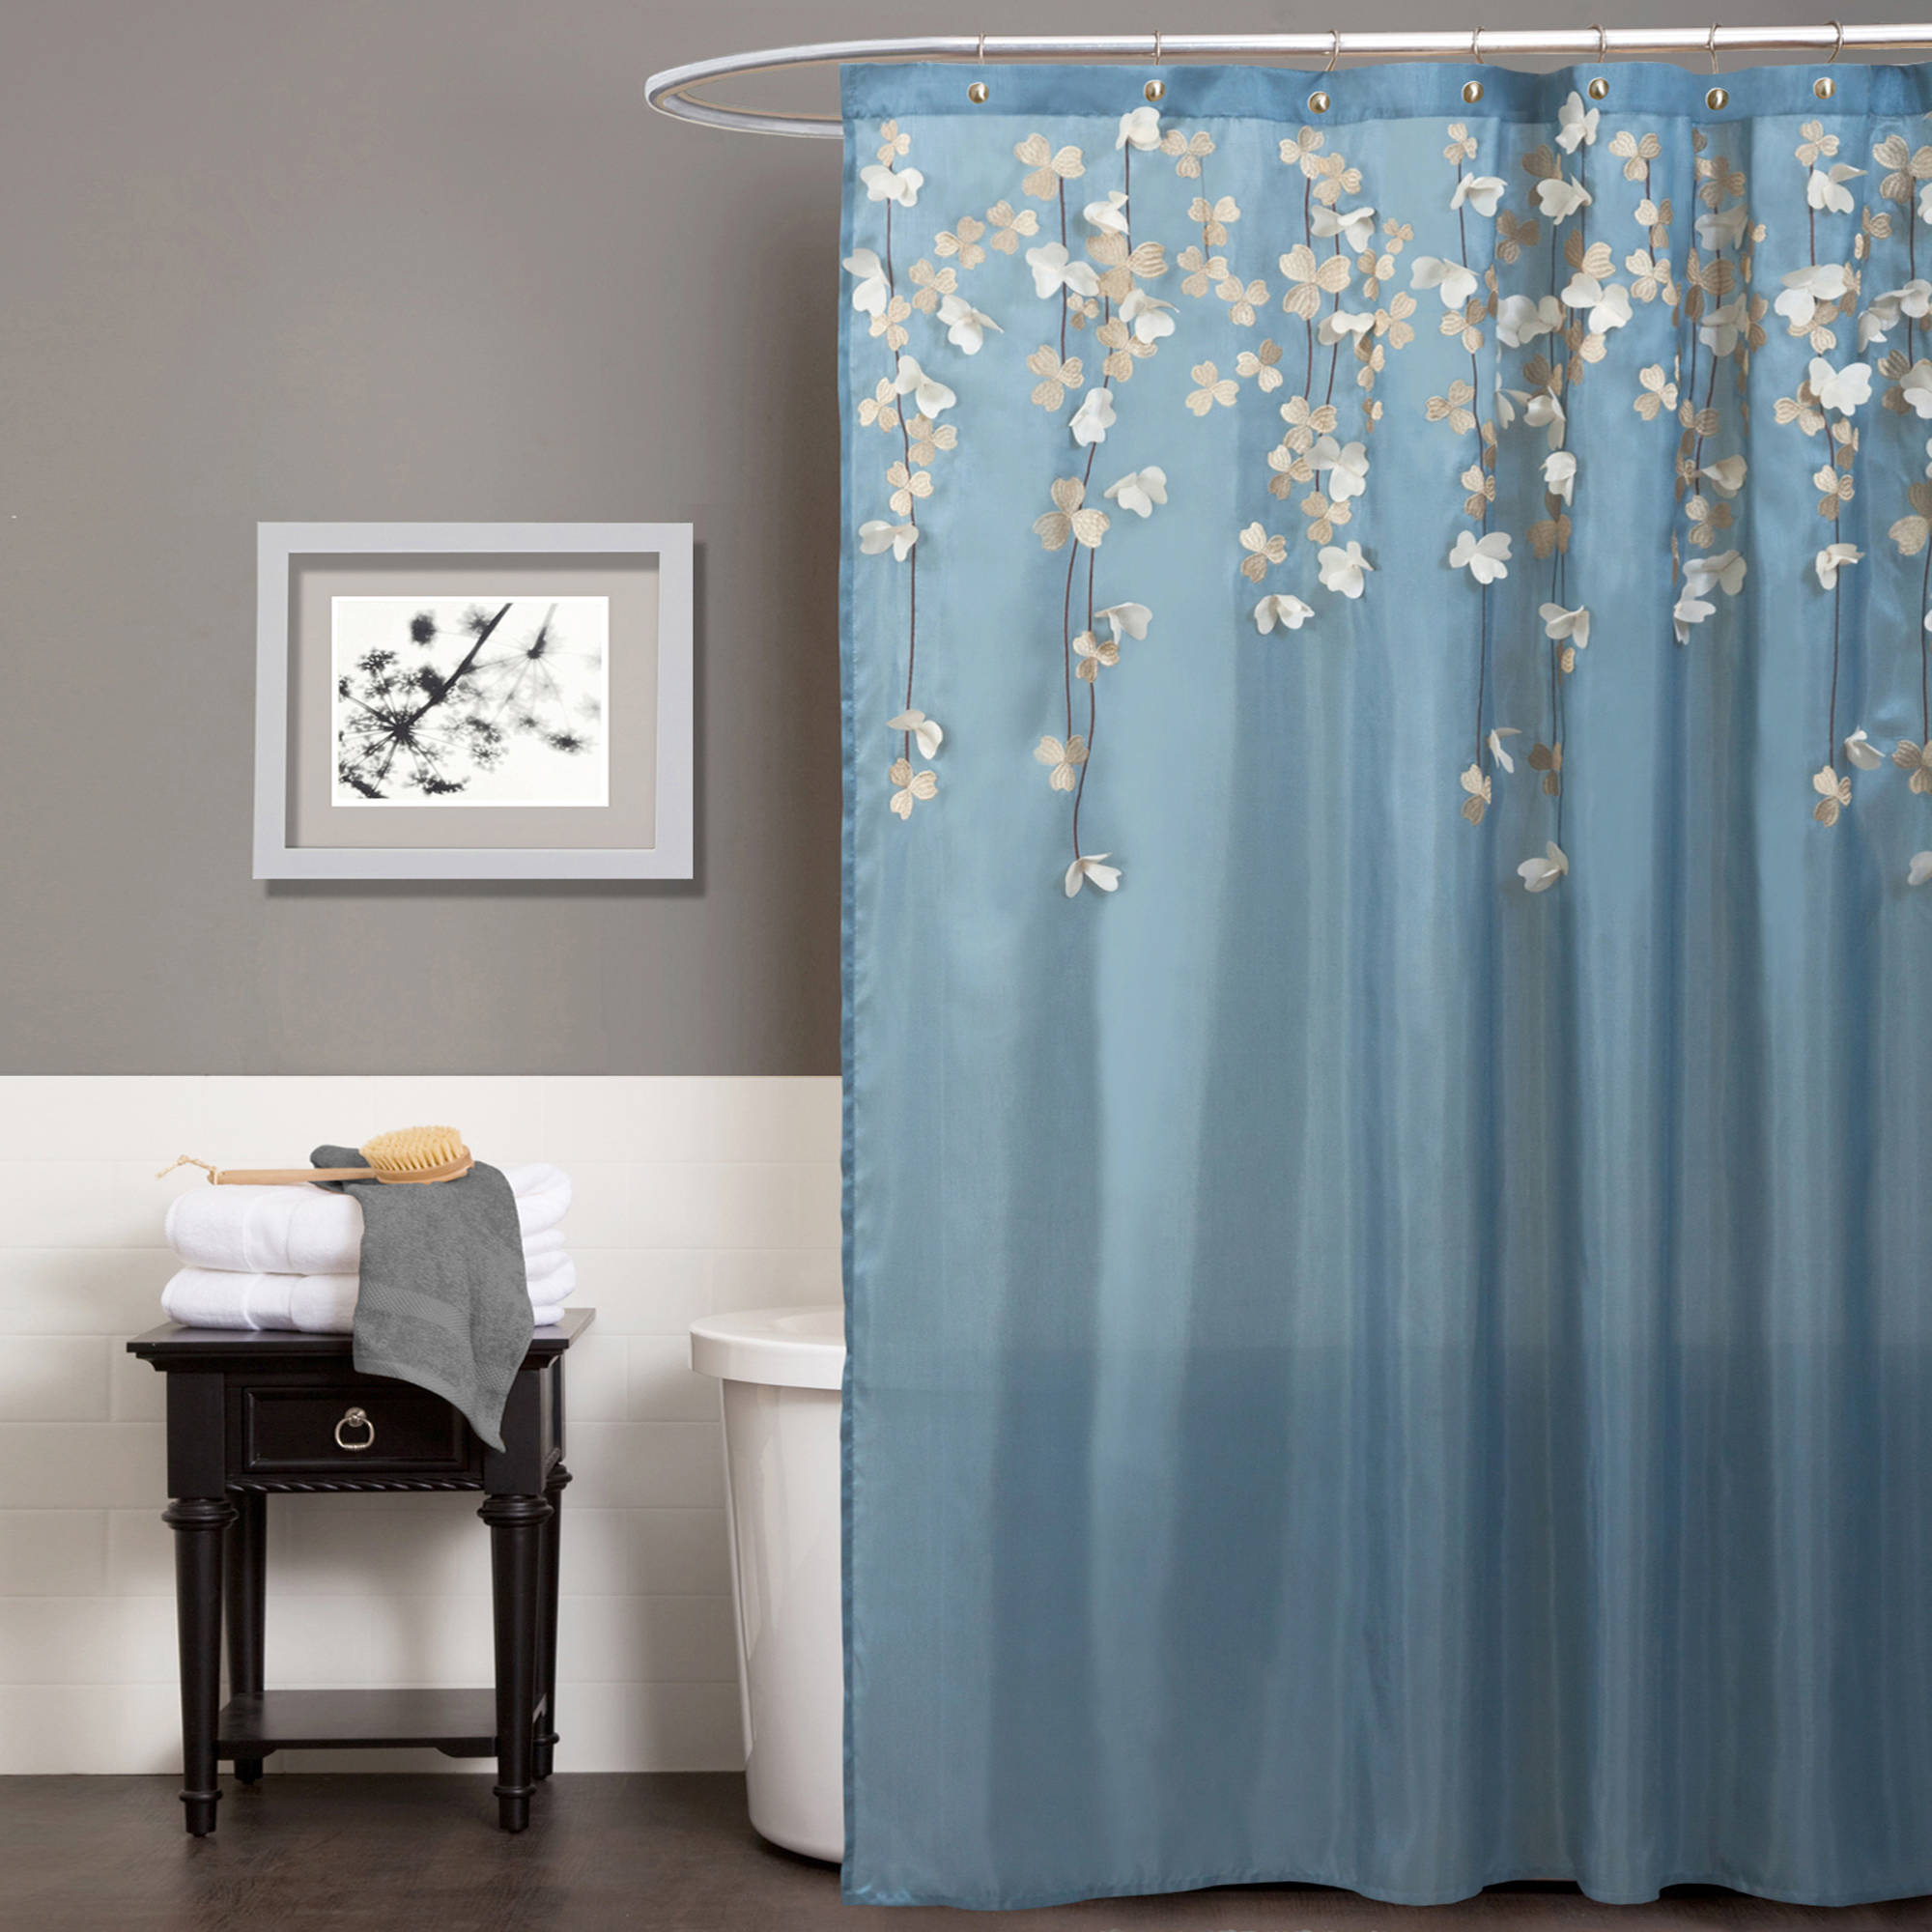 Shower Curtains Walmart in measurements 2000 X 2000